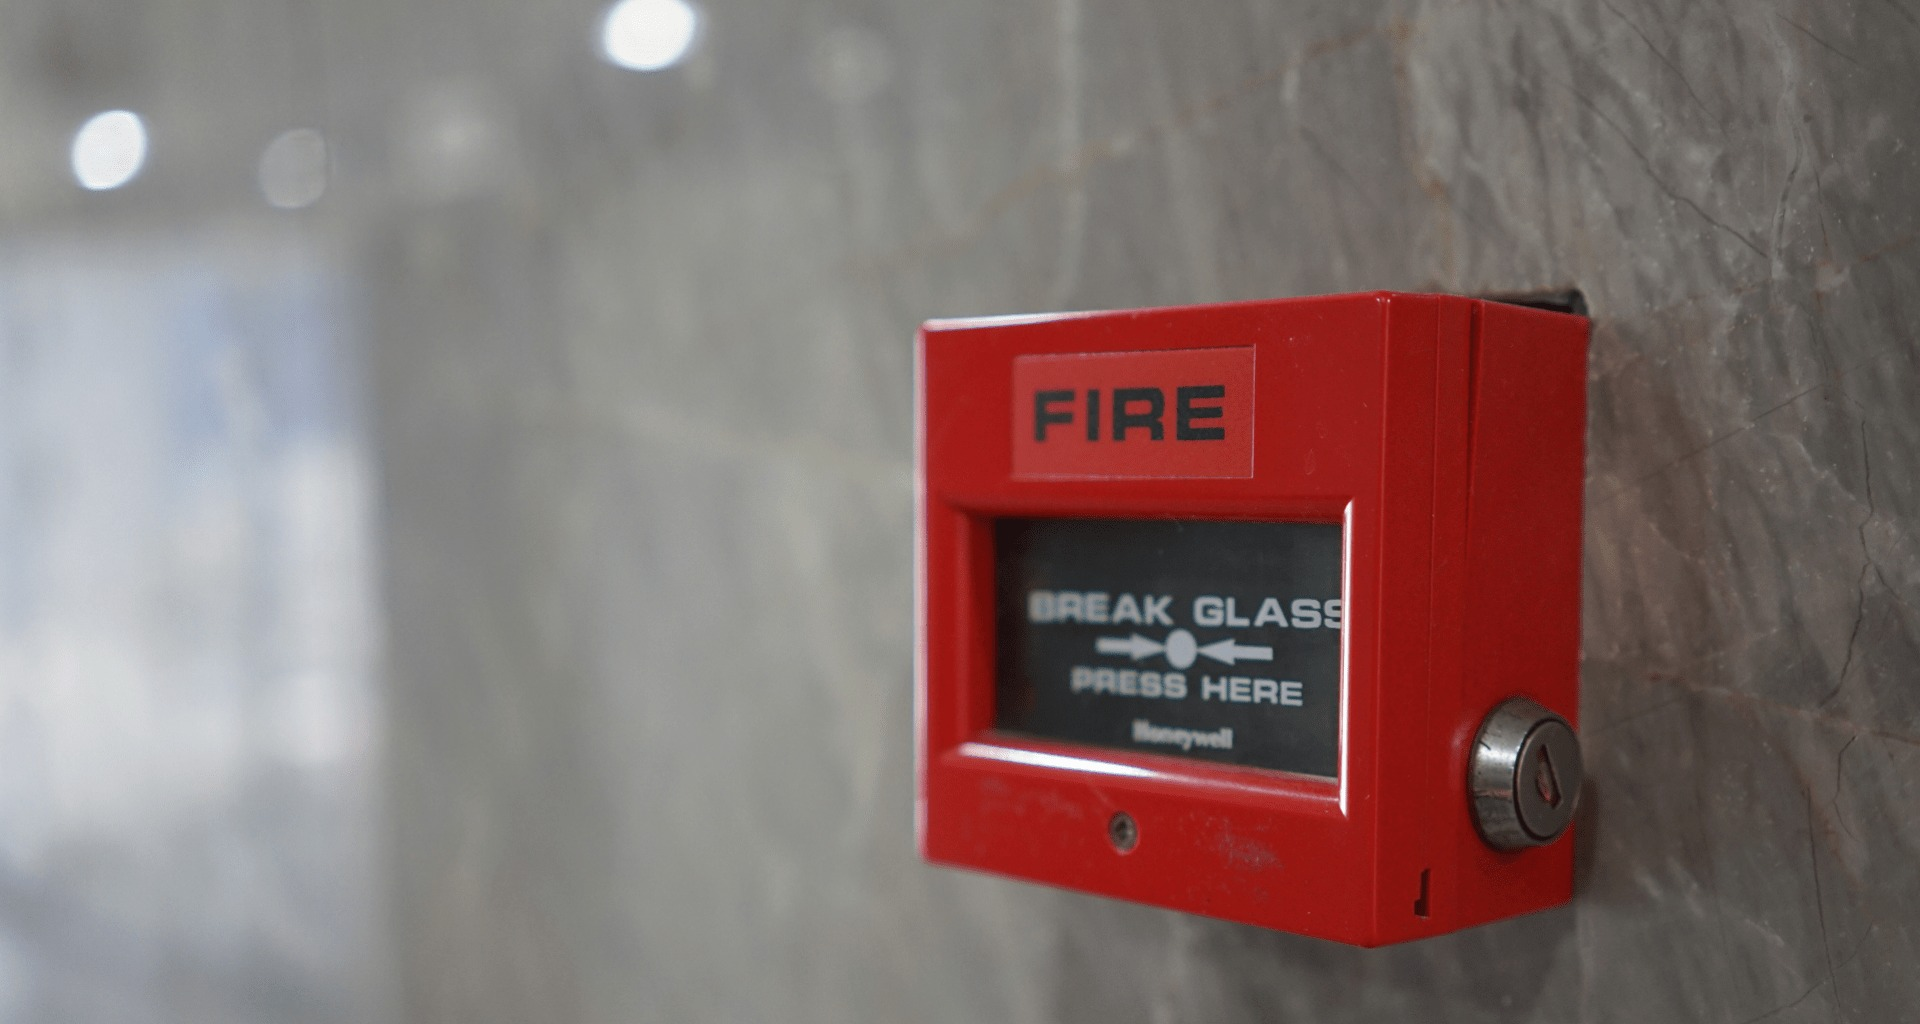 a red wall-mounted fire alarm